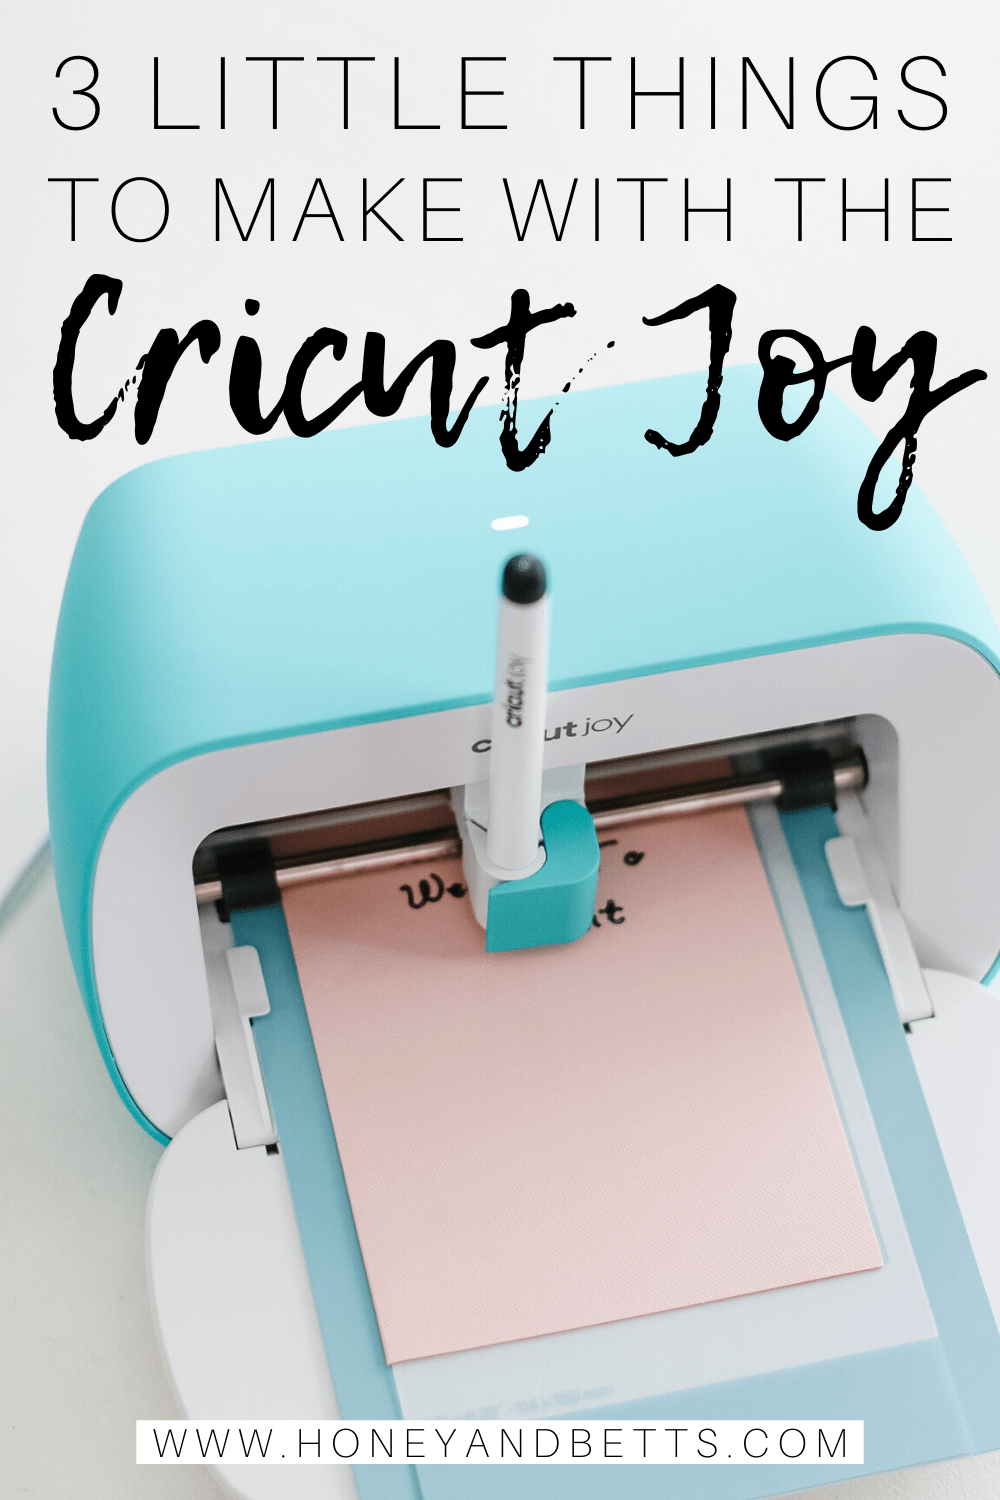 Cricut Joy is the perfect companion to quickly and easily personalize anything with one cut and one color, in 15 minutes or less. It is fun, functional, and simple to use. Practical, everyday projects have never been more accessible or easier!